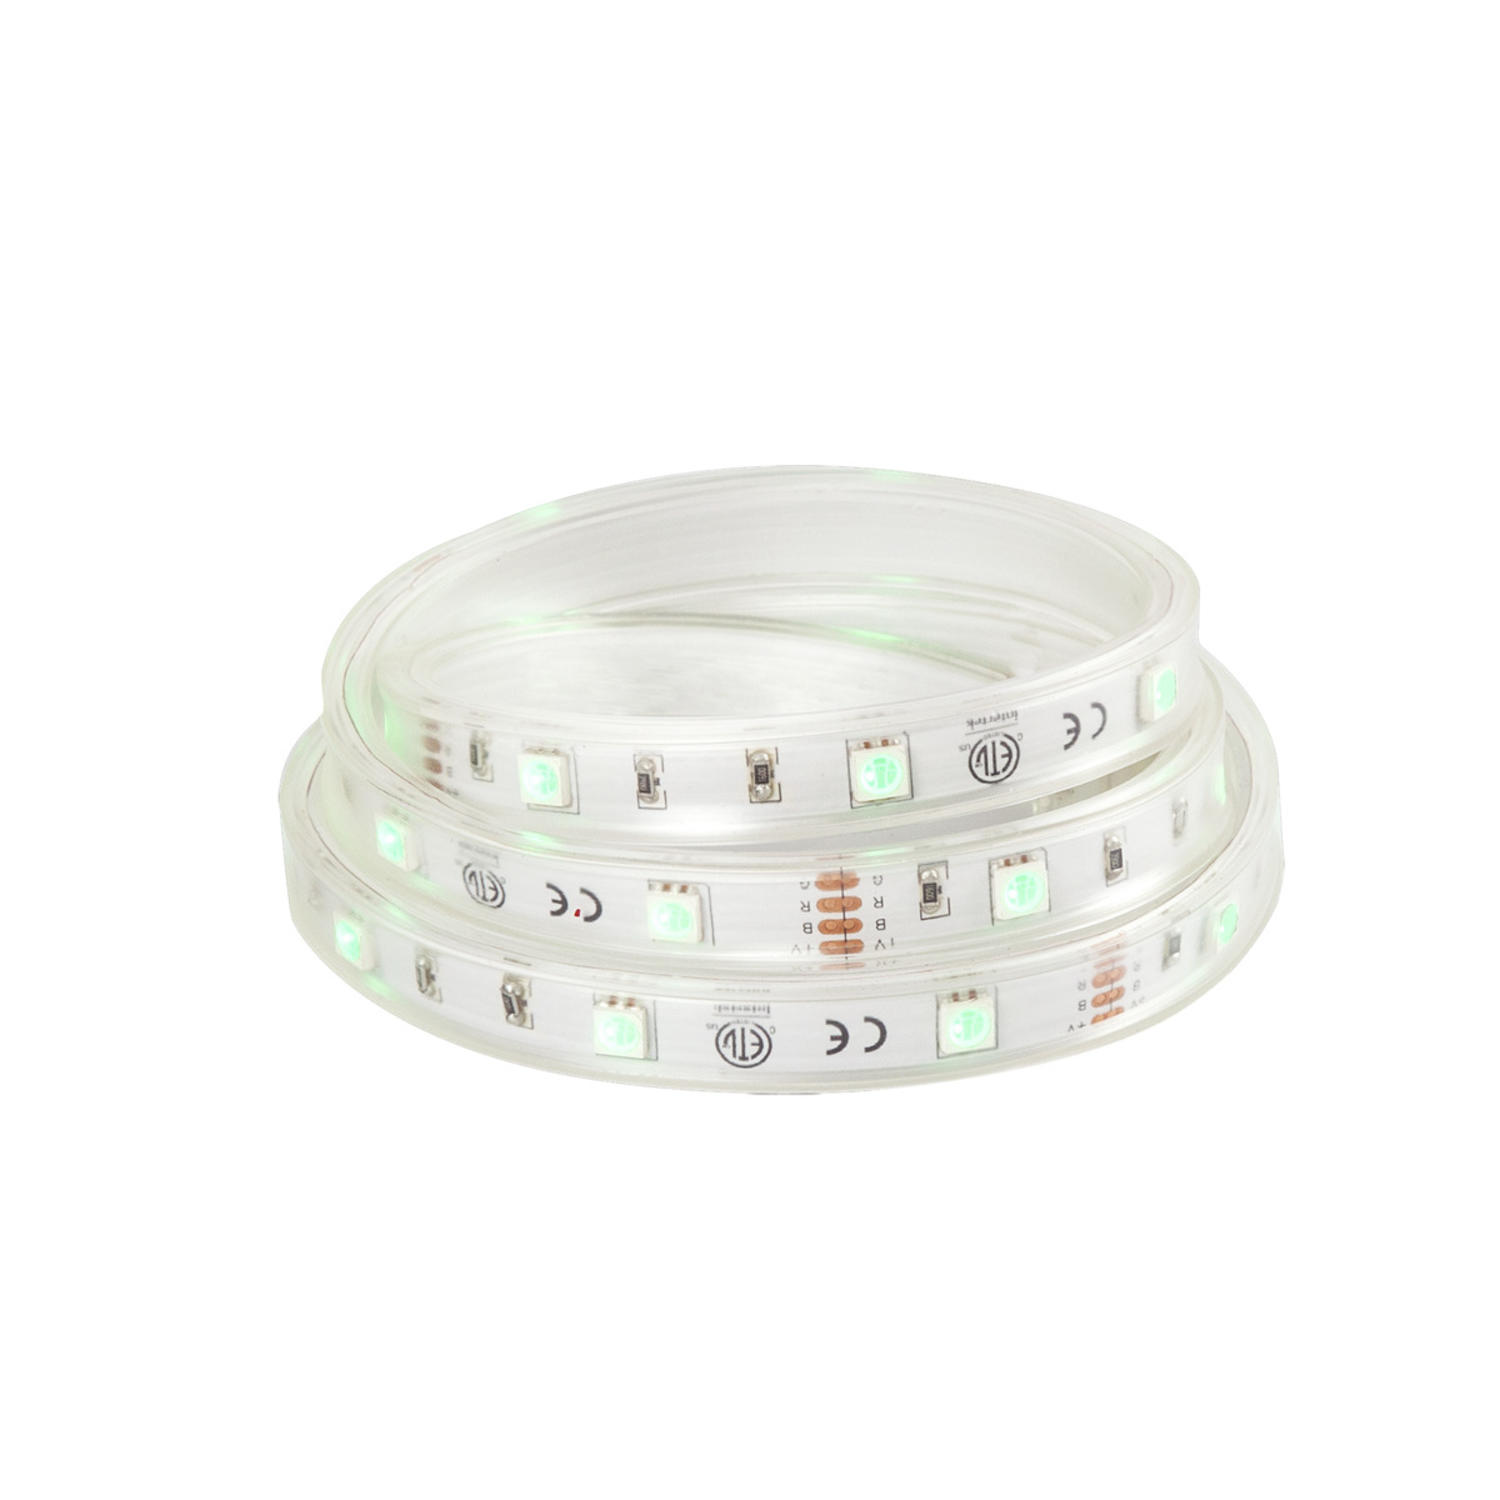 LED strip R IP67 12V RGB 5m